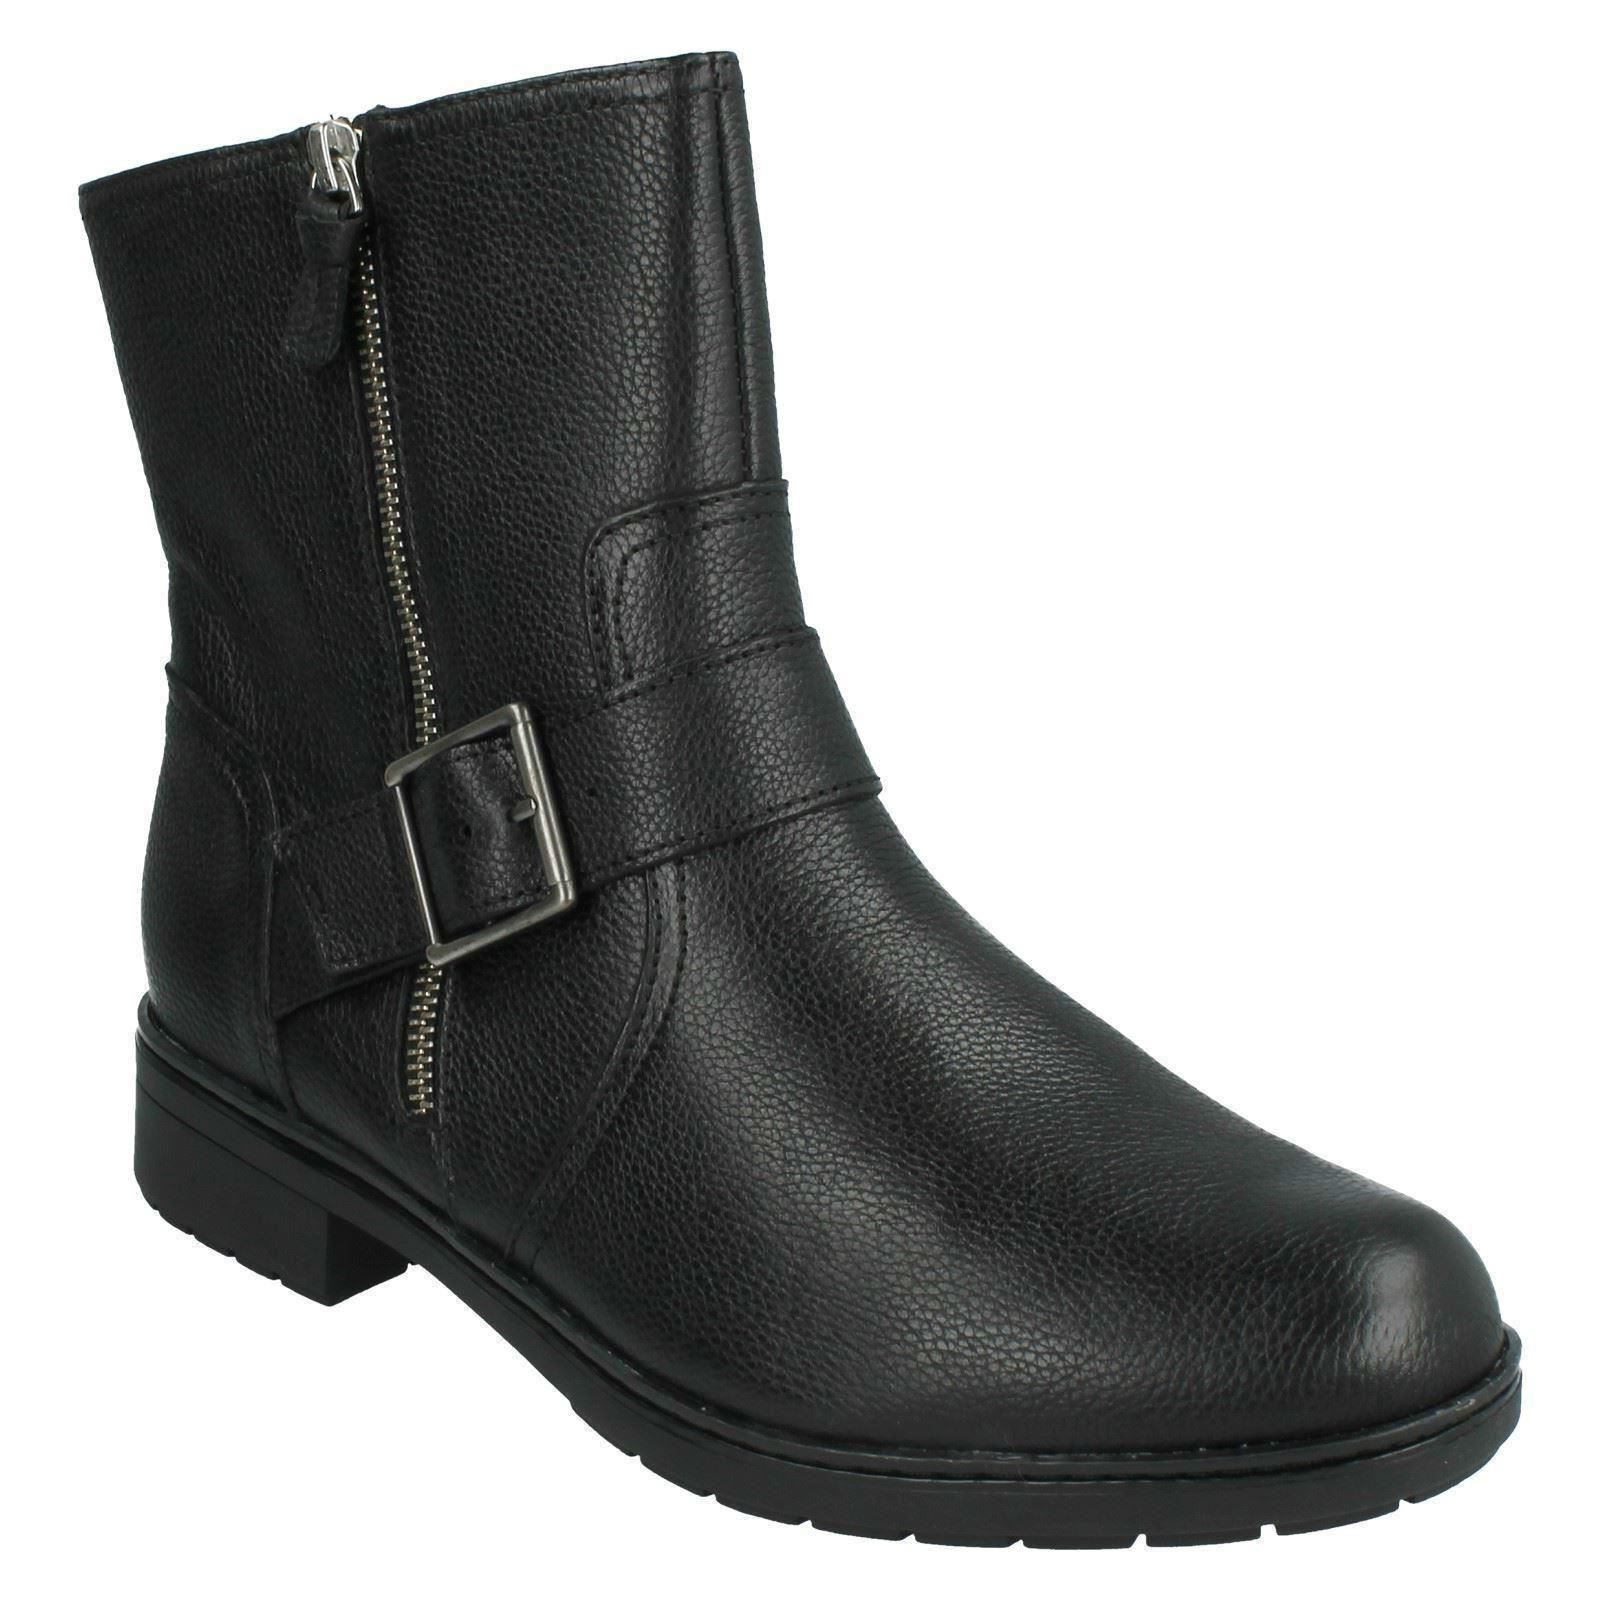 MERRIAN LYNN LADIES CLARKS ZIP LEATHER CASUAL BIKER MID CALF WINTER ANKLE BOOTS